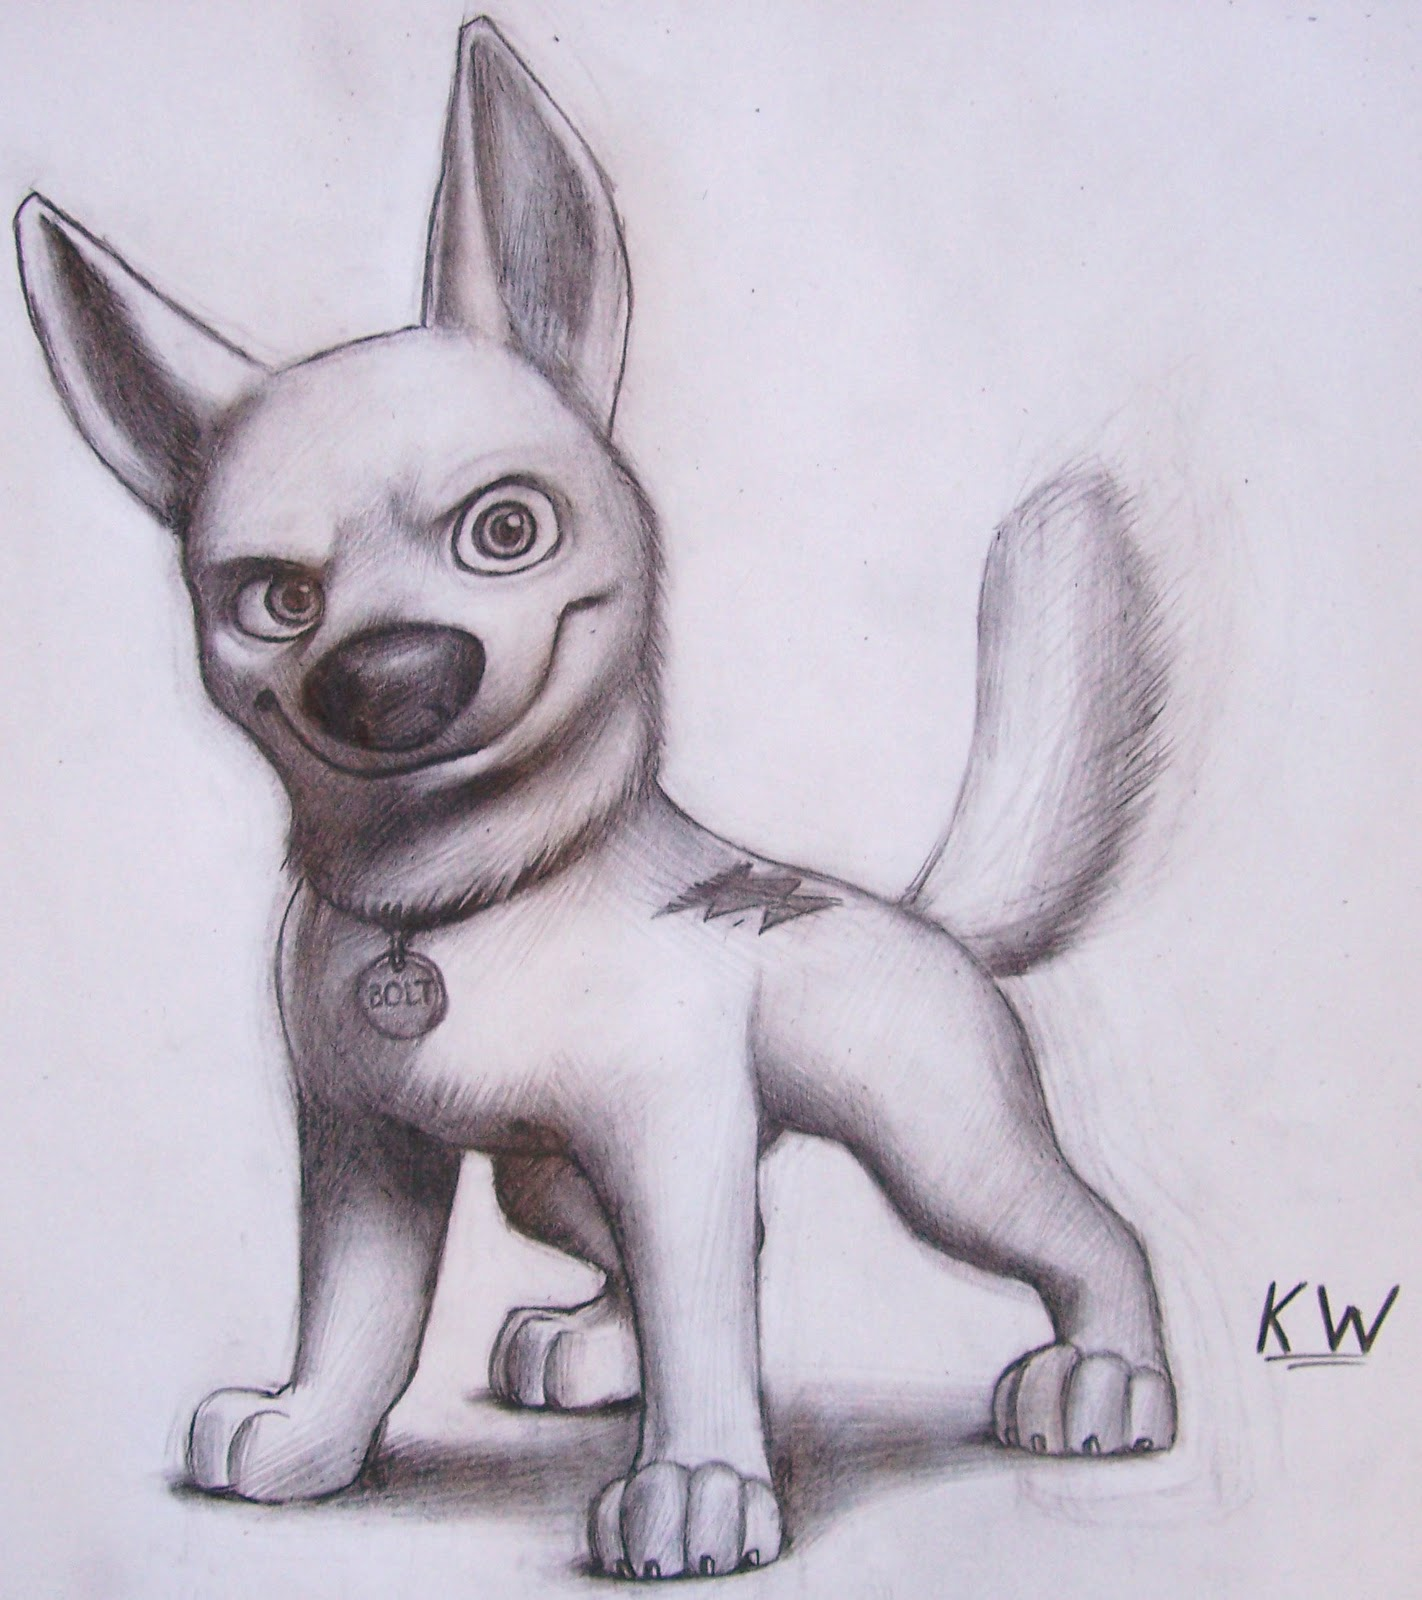 Drawn stare shaded Pencil Posted Disney in: